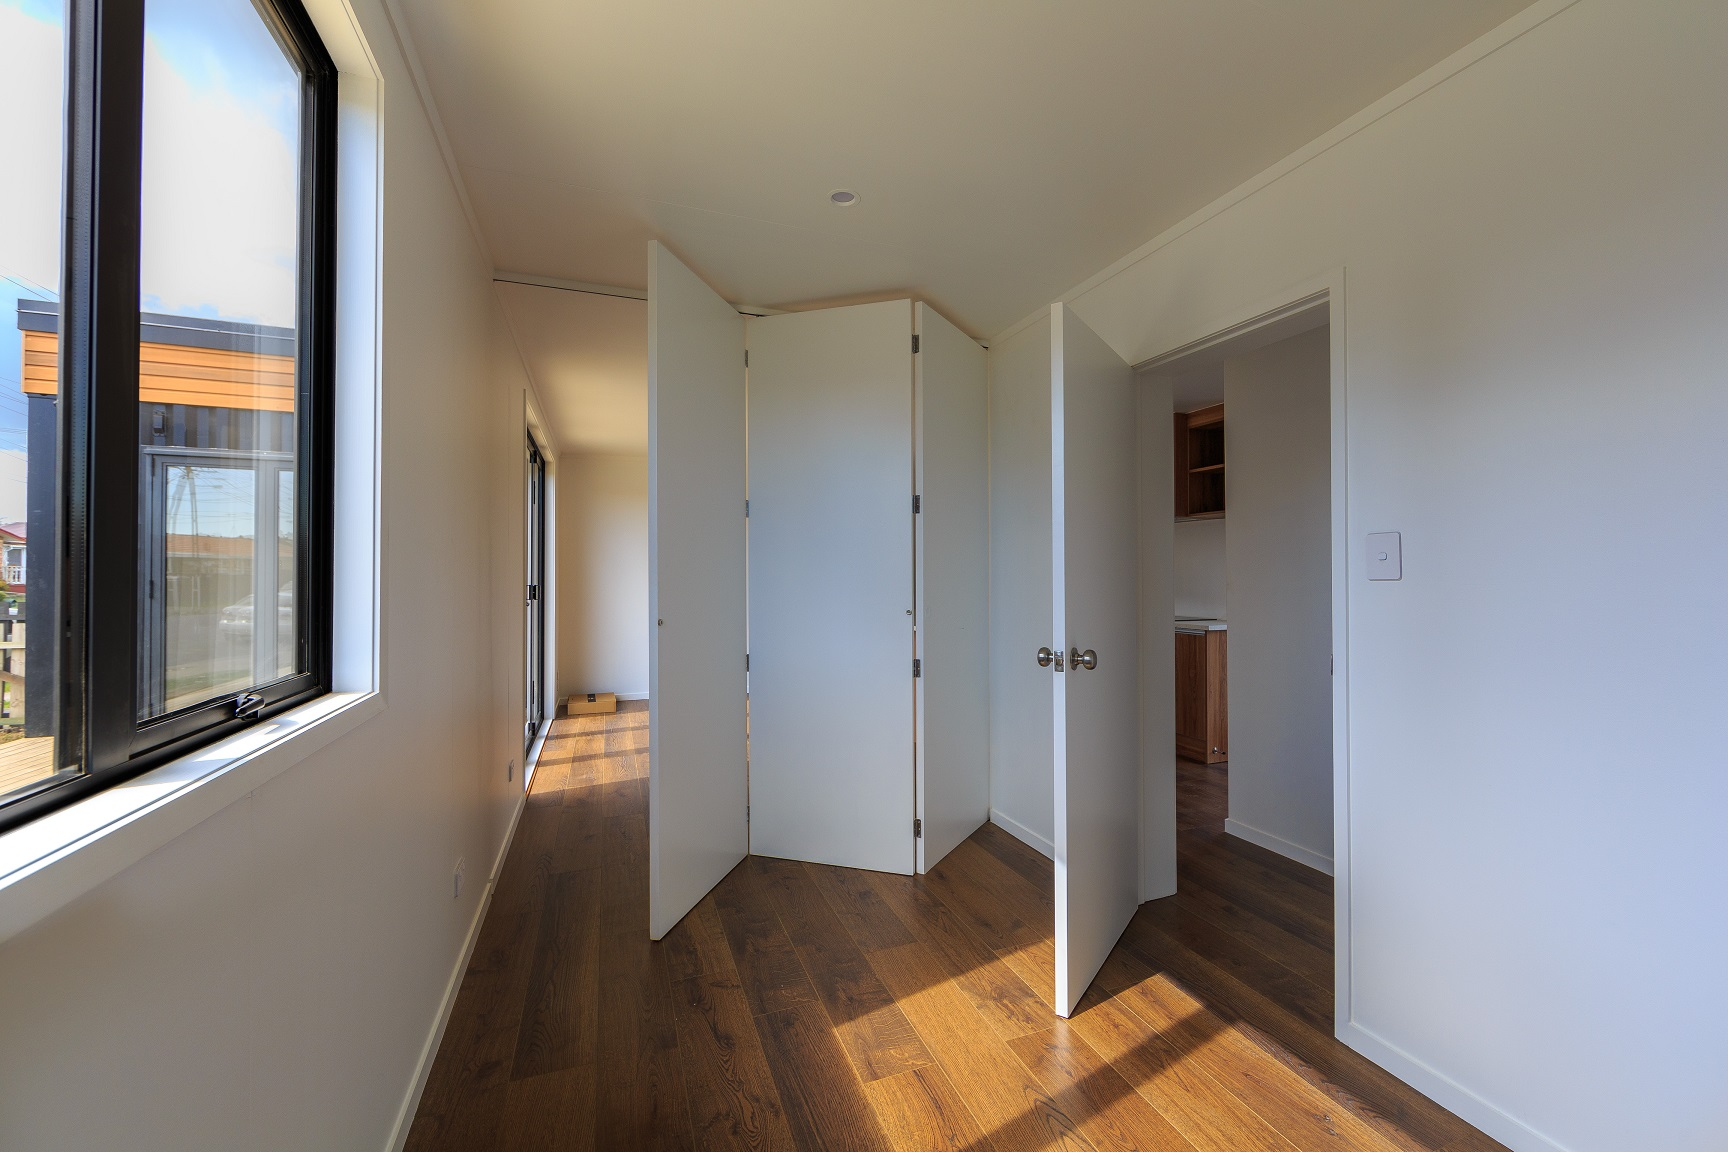 4th bedroom or living room extension